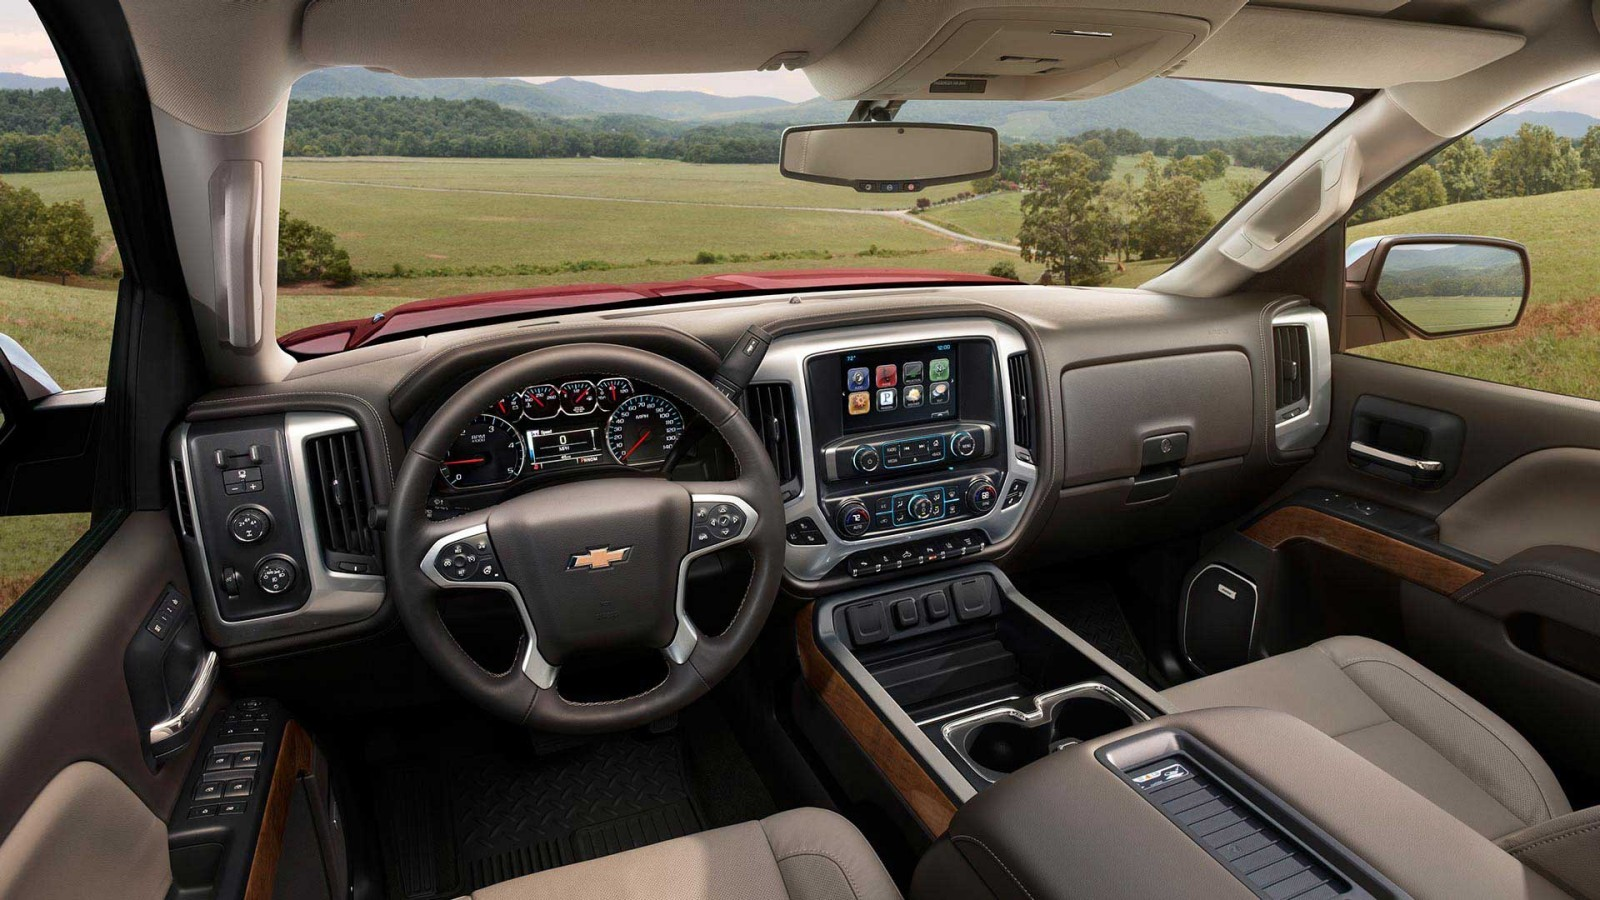 Chevy Silverado 2500HD Interior